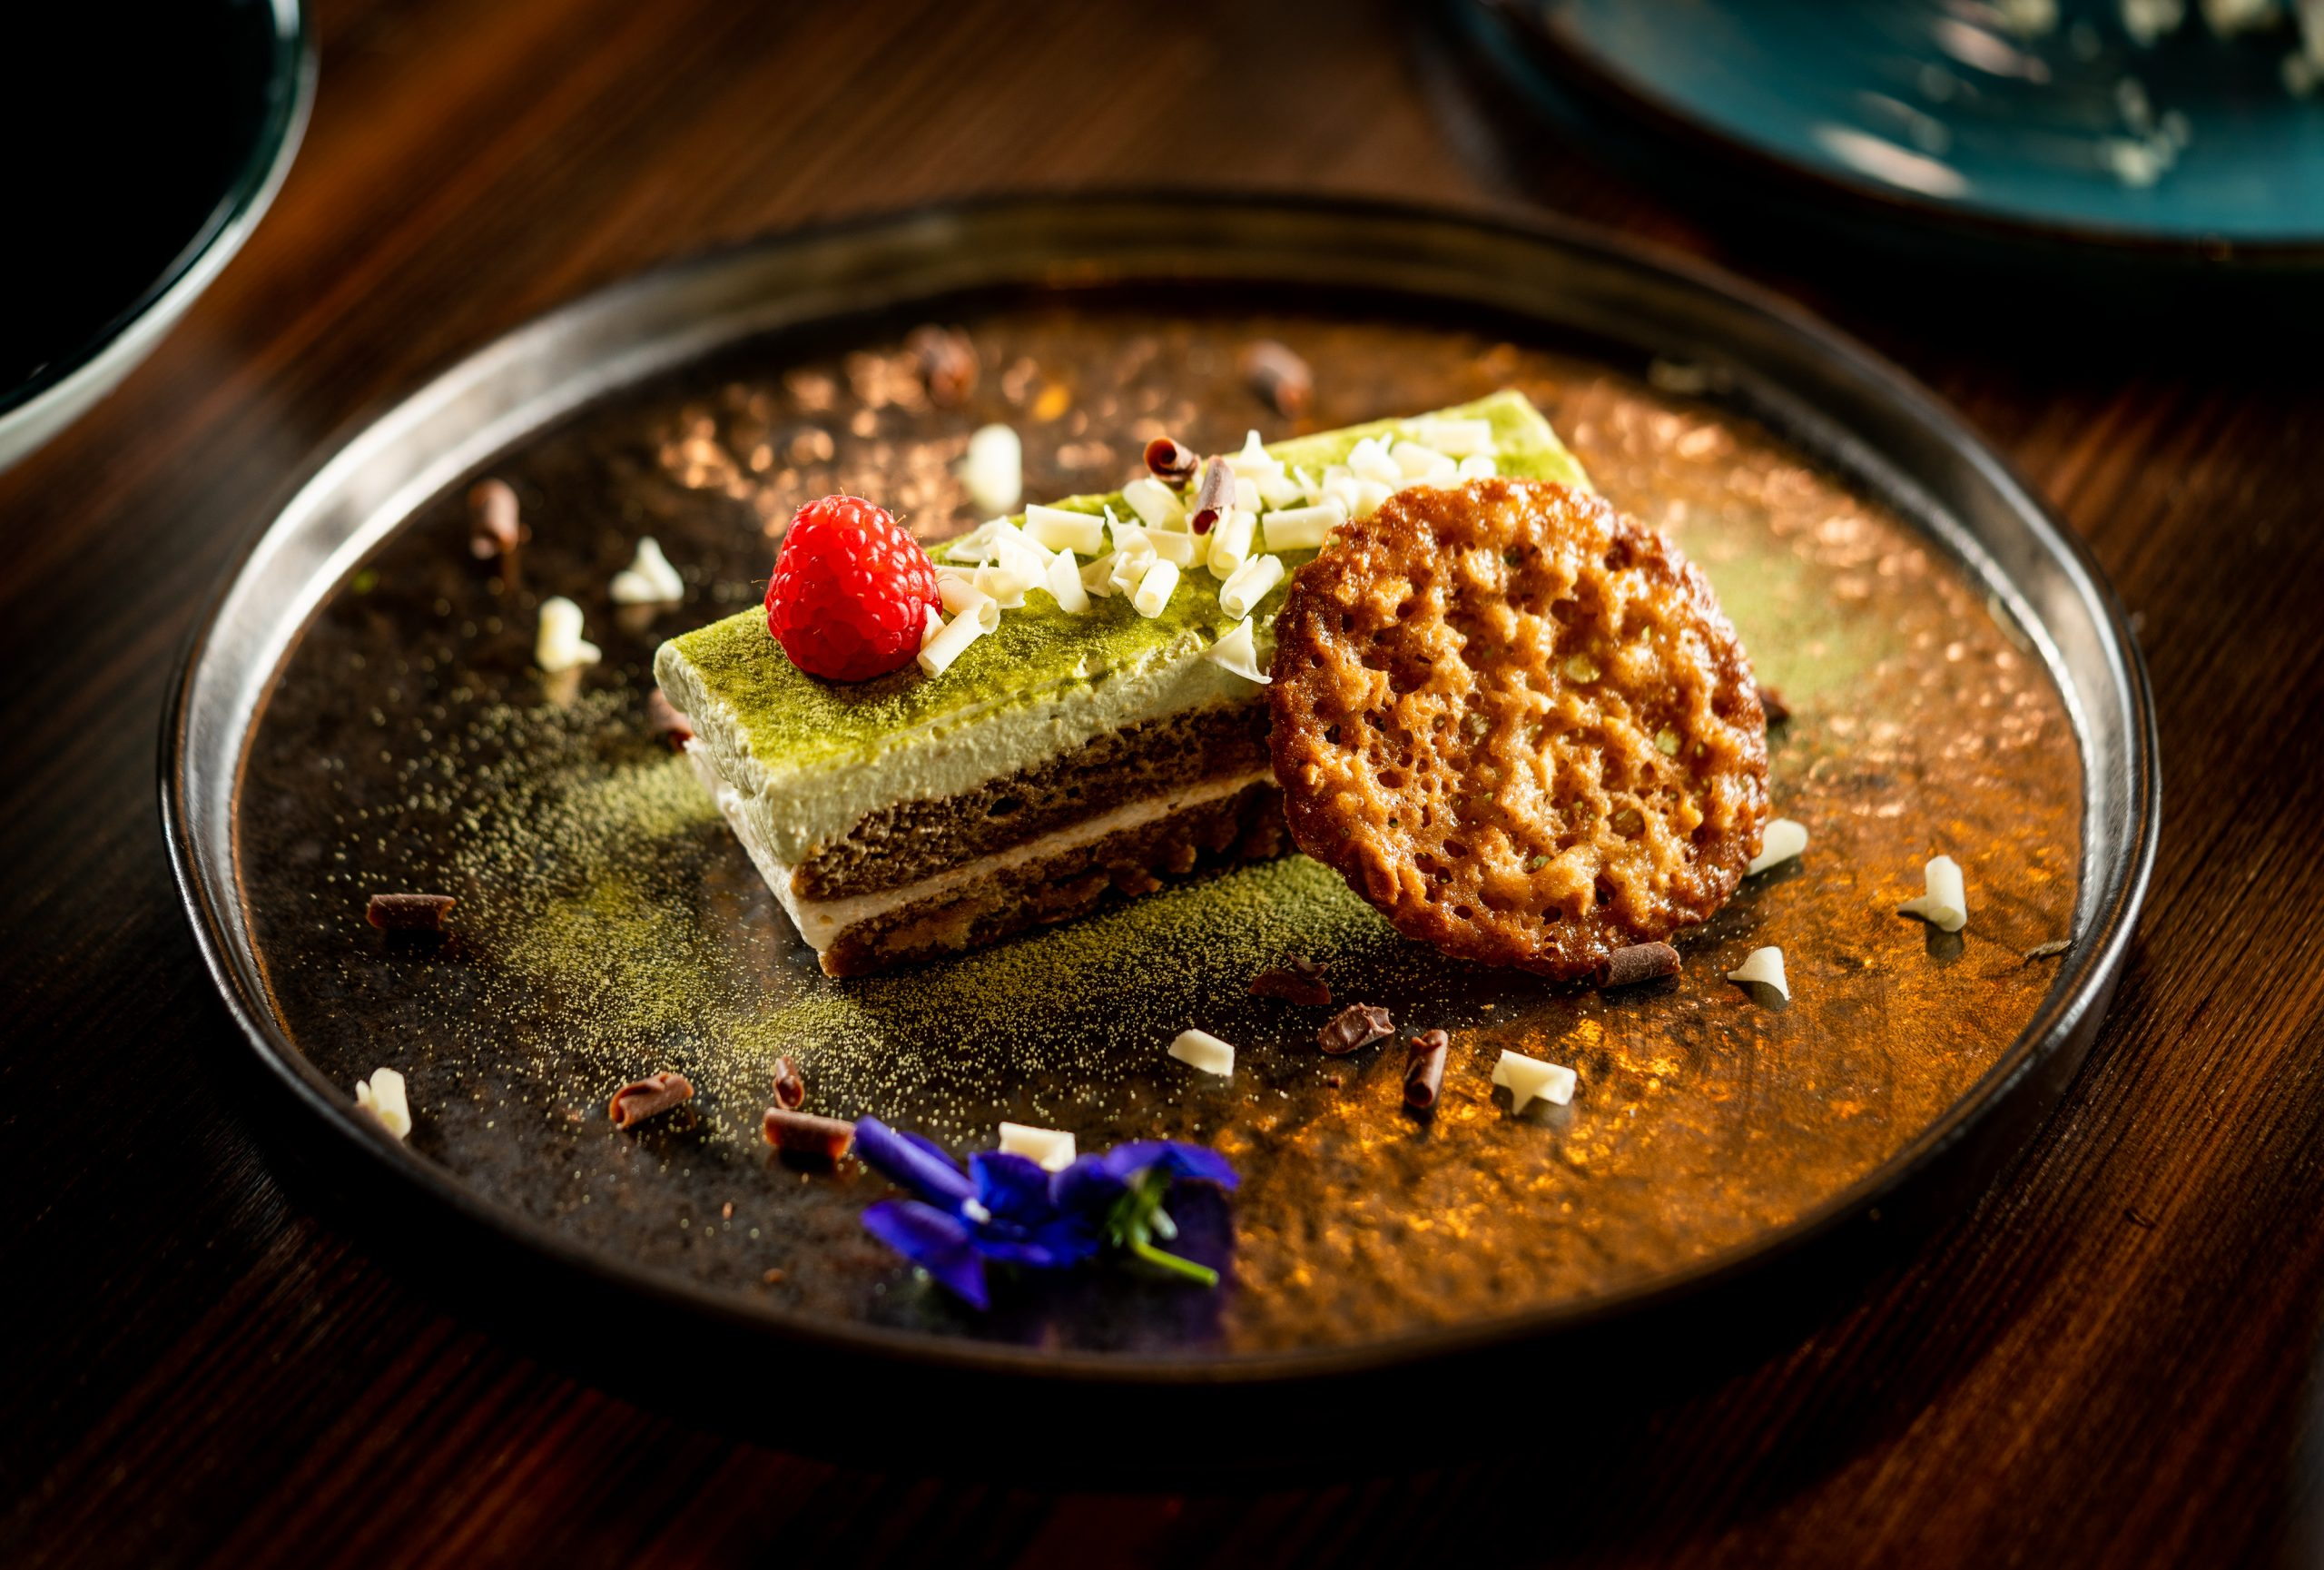 Food Photography - Done by Deon